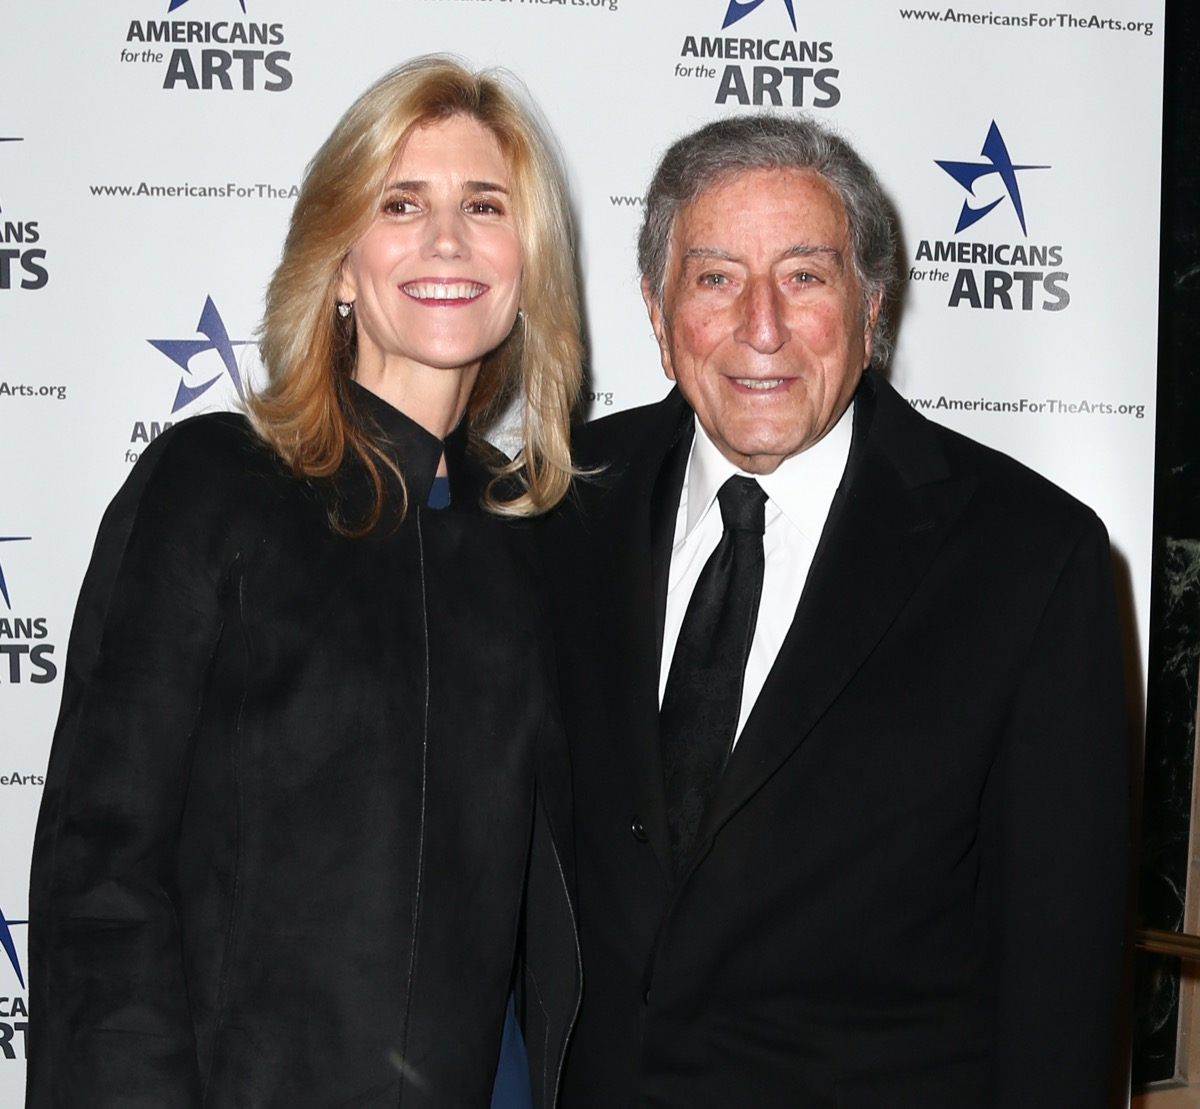 Susan Bendetto and Tony Bennett